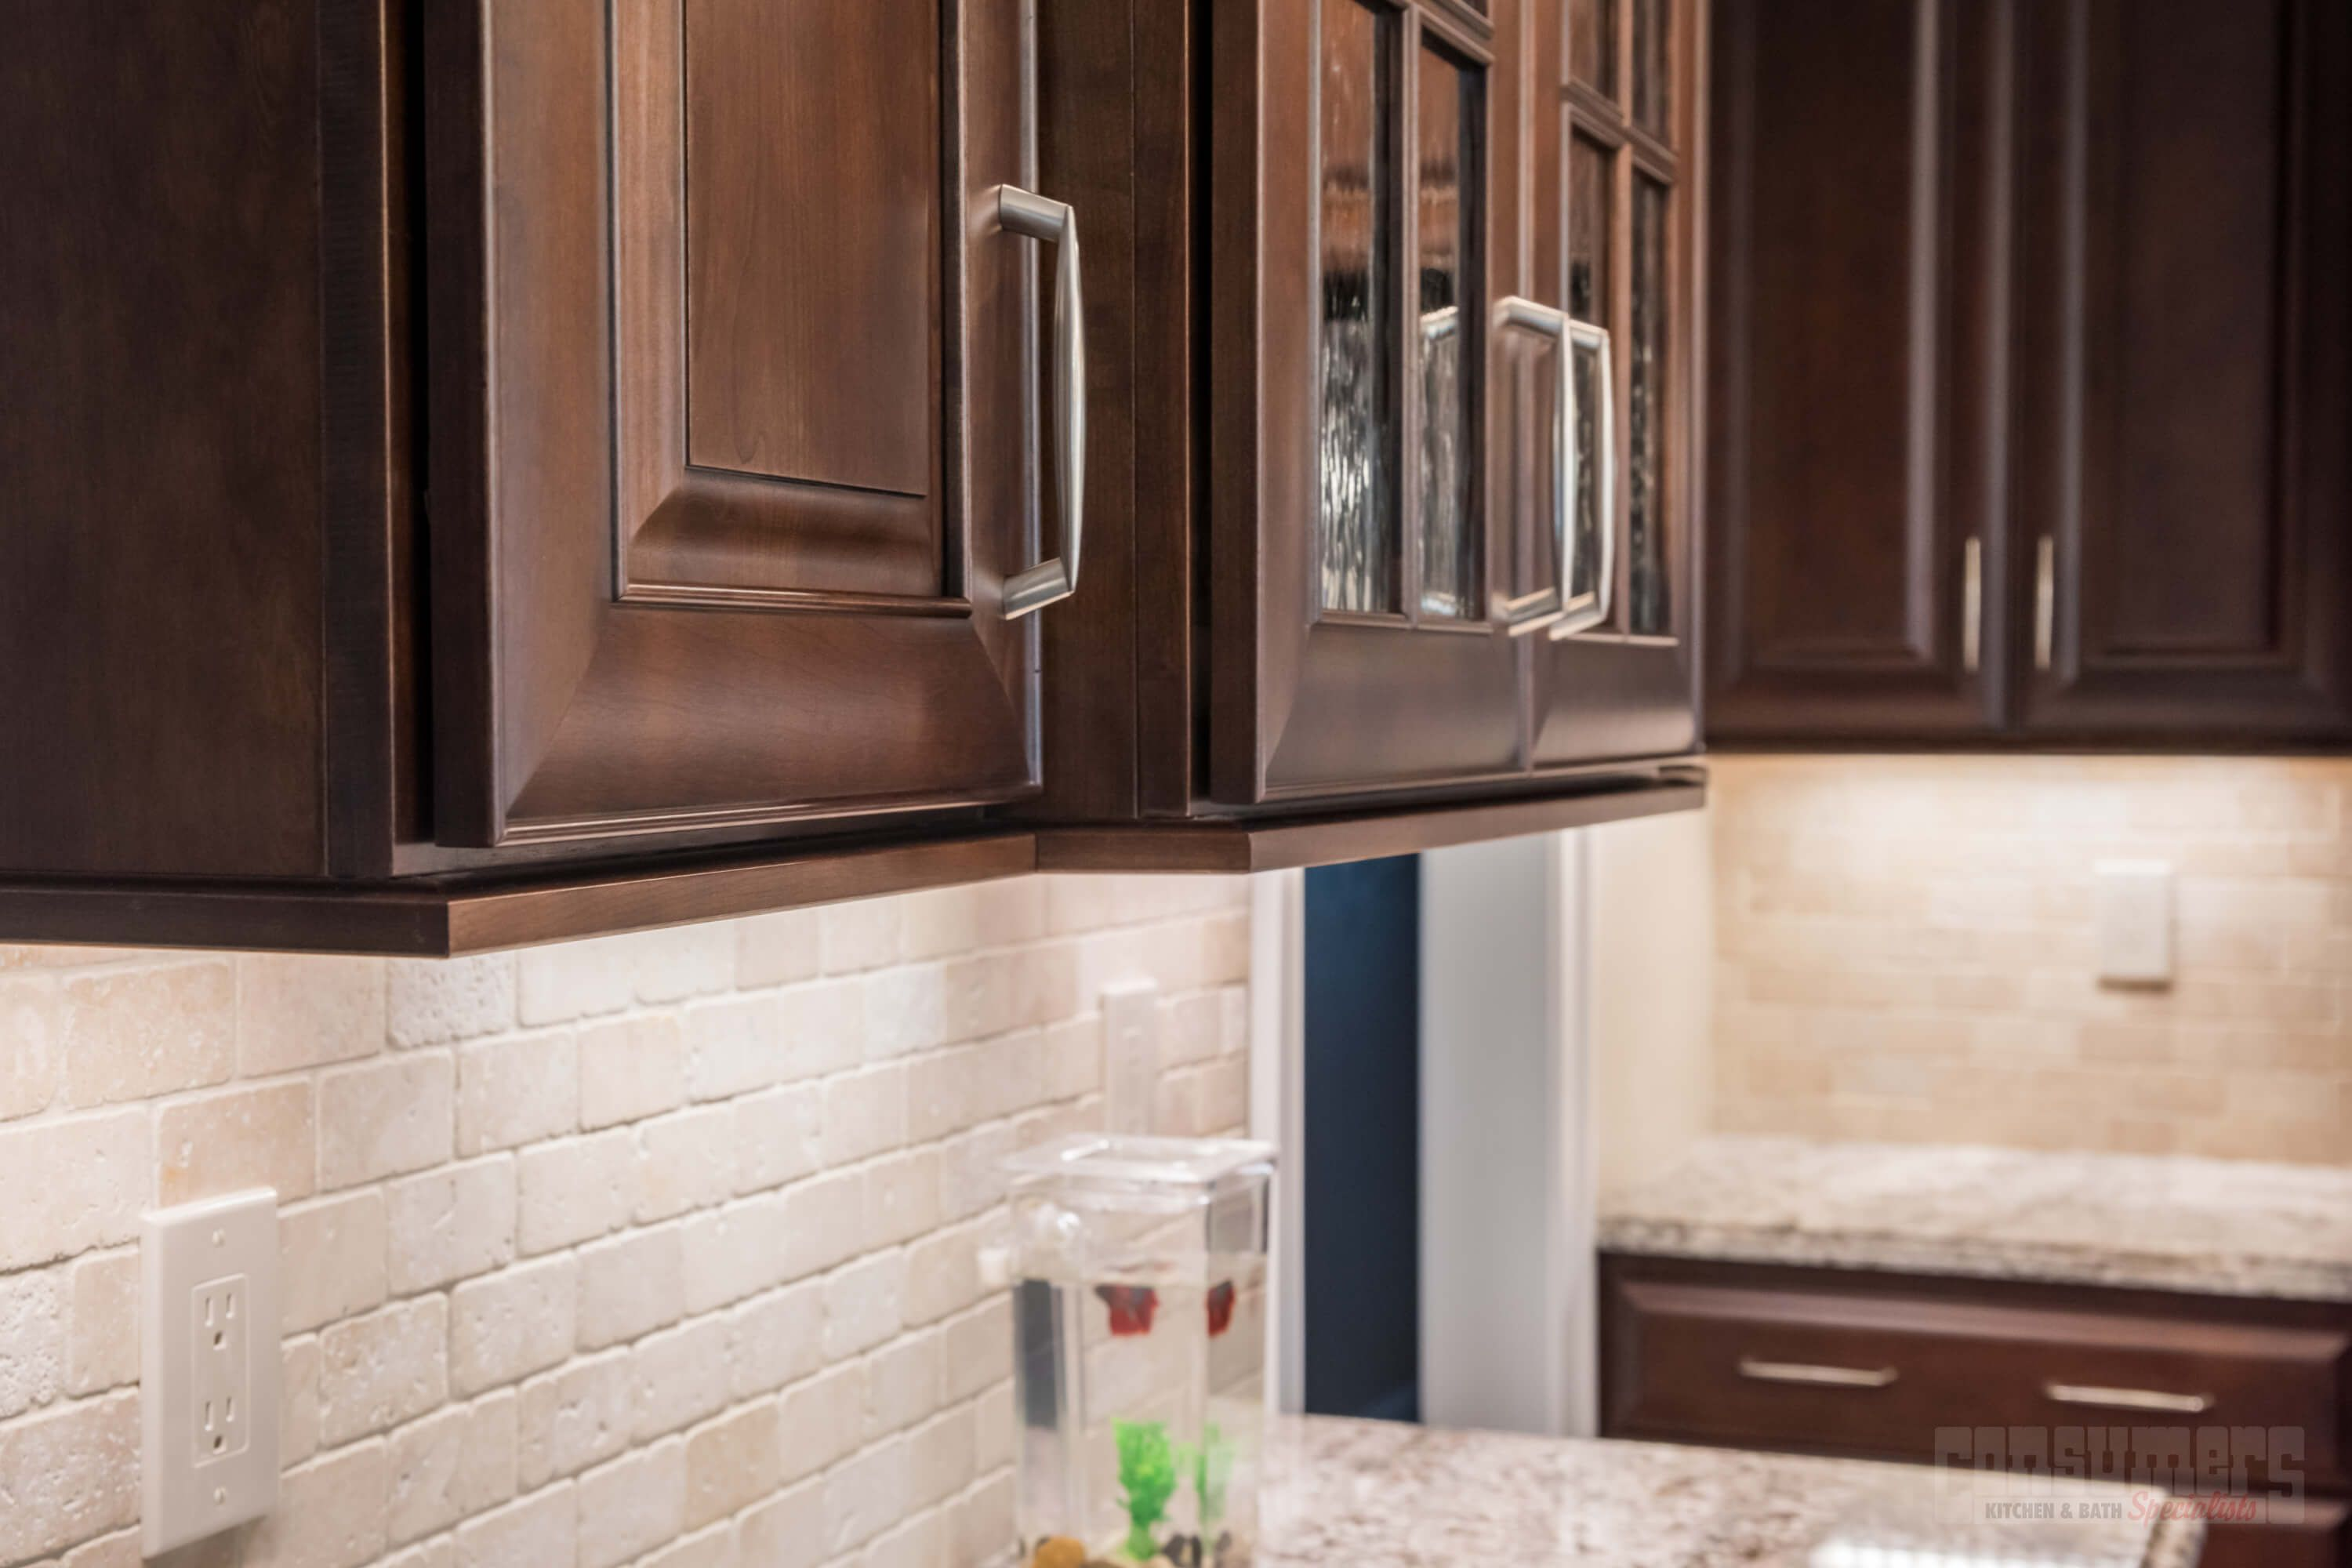 This Cherry Kitchen Was Designed With Starmark Cabinets In The Prescott  Door Style. Featuring A Chestnut Stain Finish, The White Torroncino Granite  ...